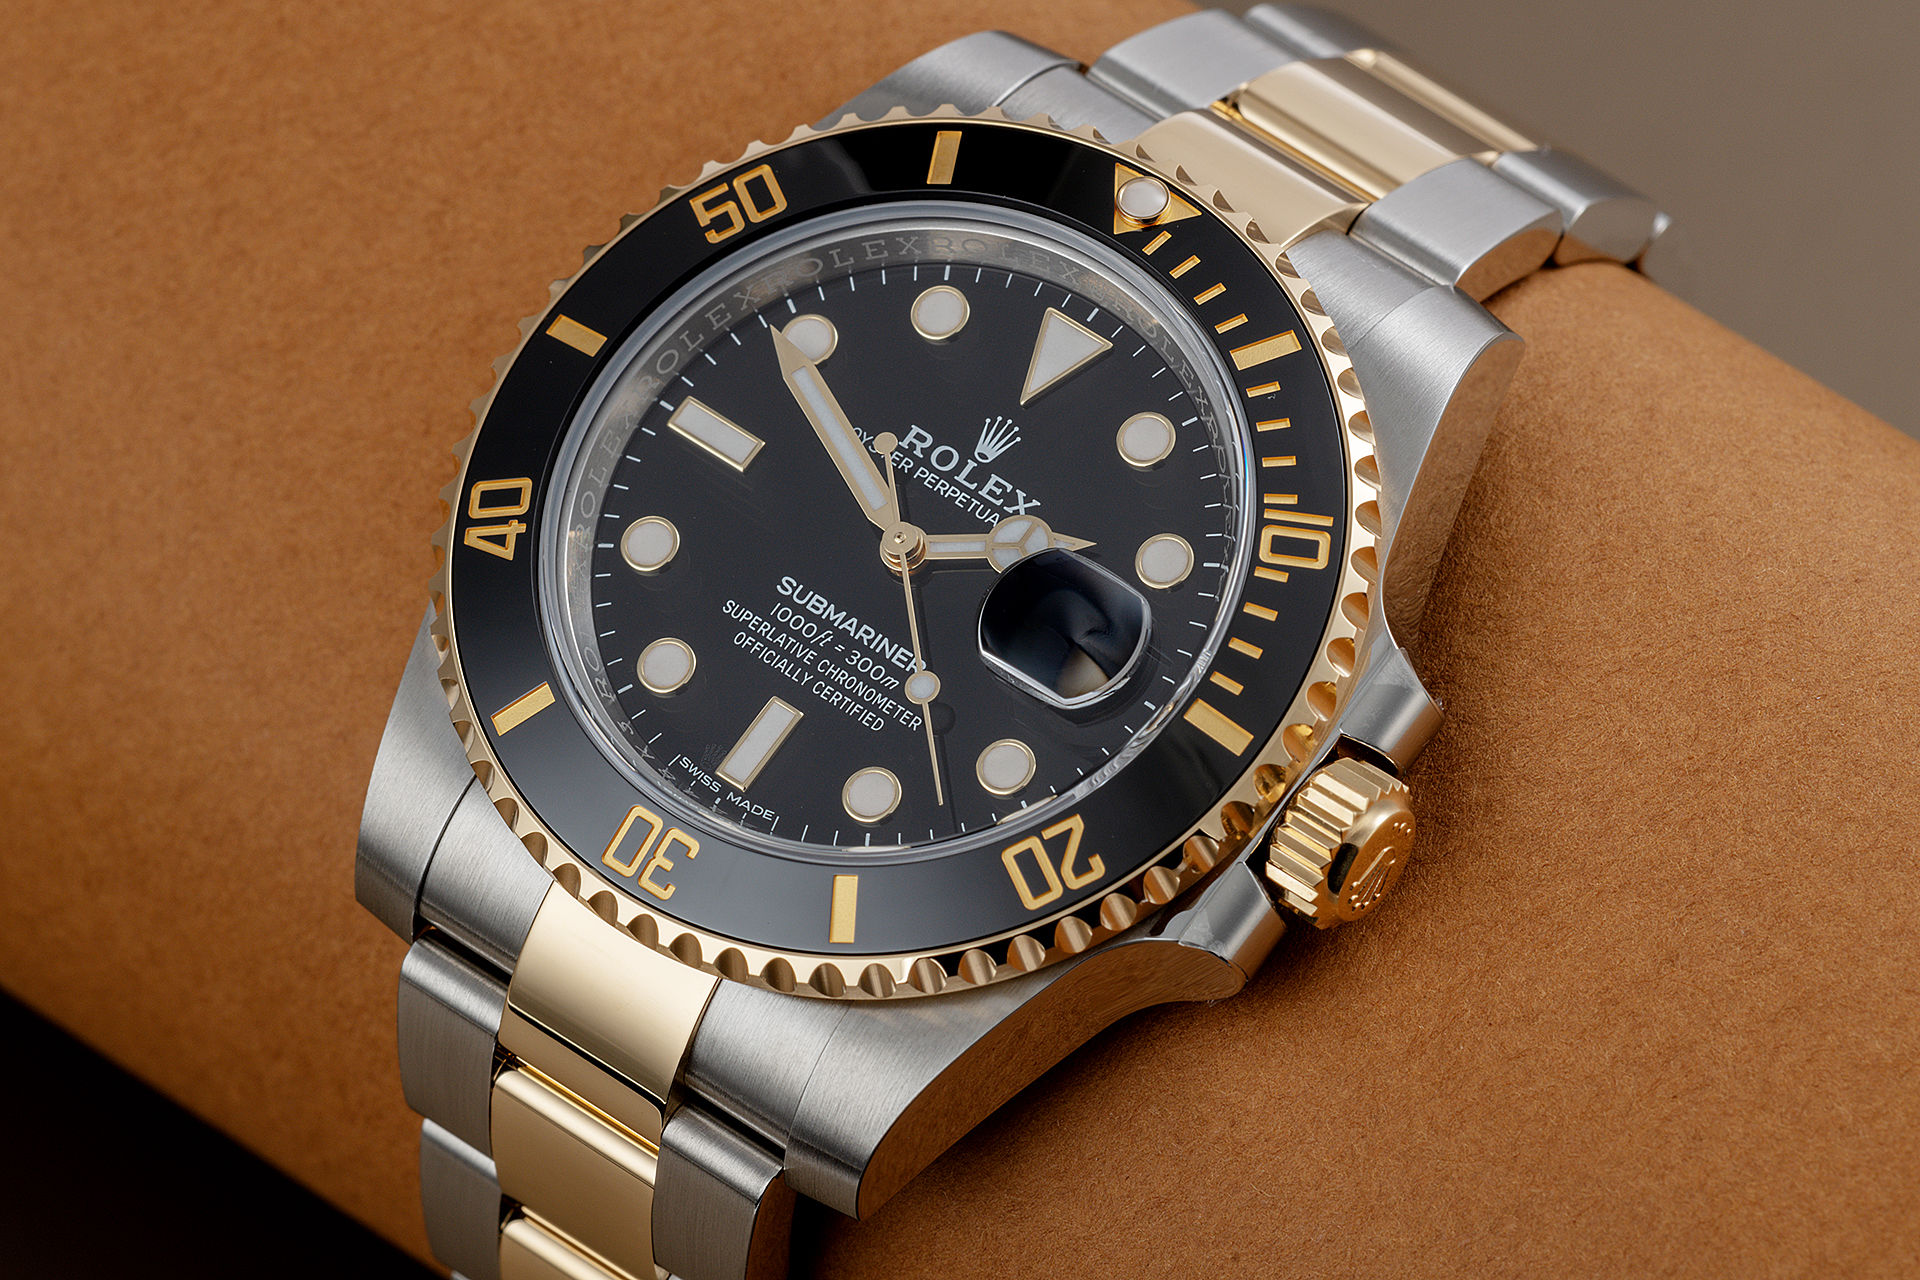 74fabf9926161 ref 116613LN | 5 Year Rolex Warranty | Rolex Submariner Date ...